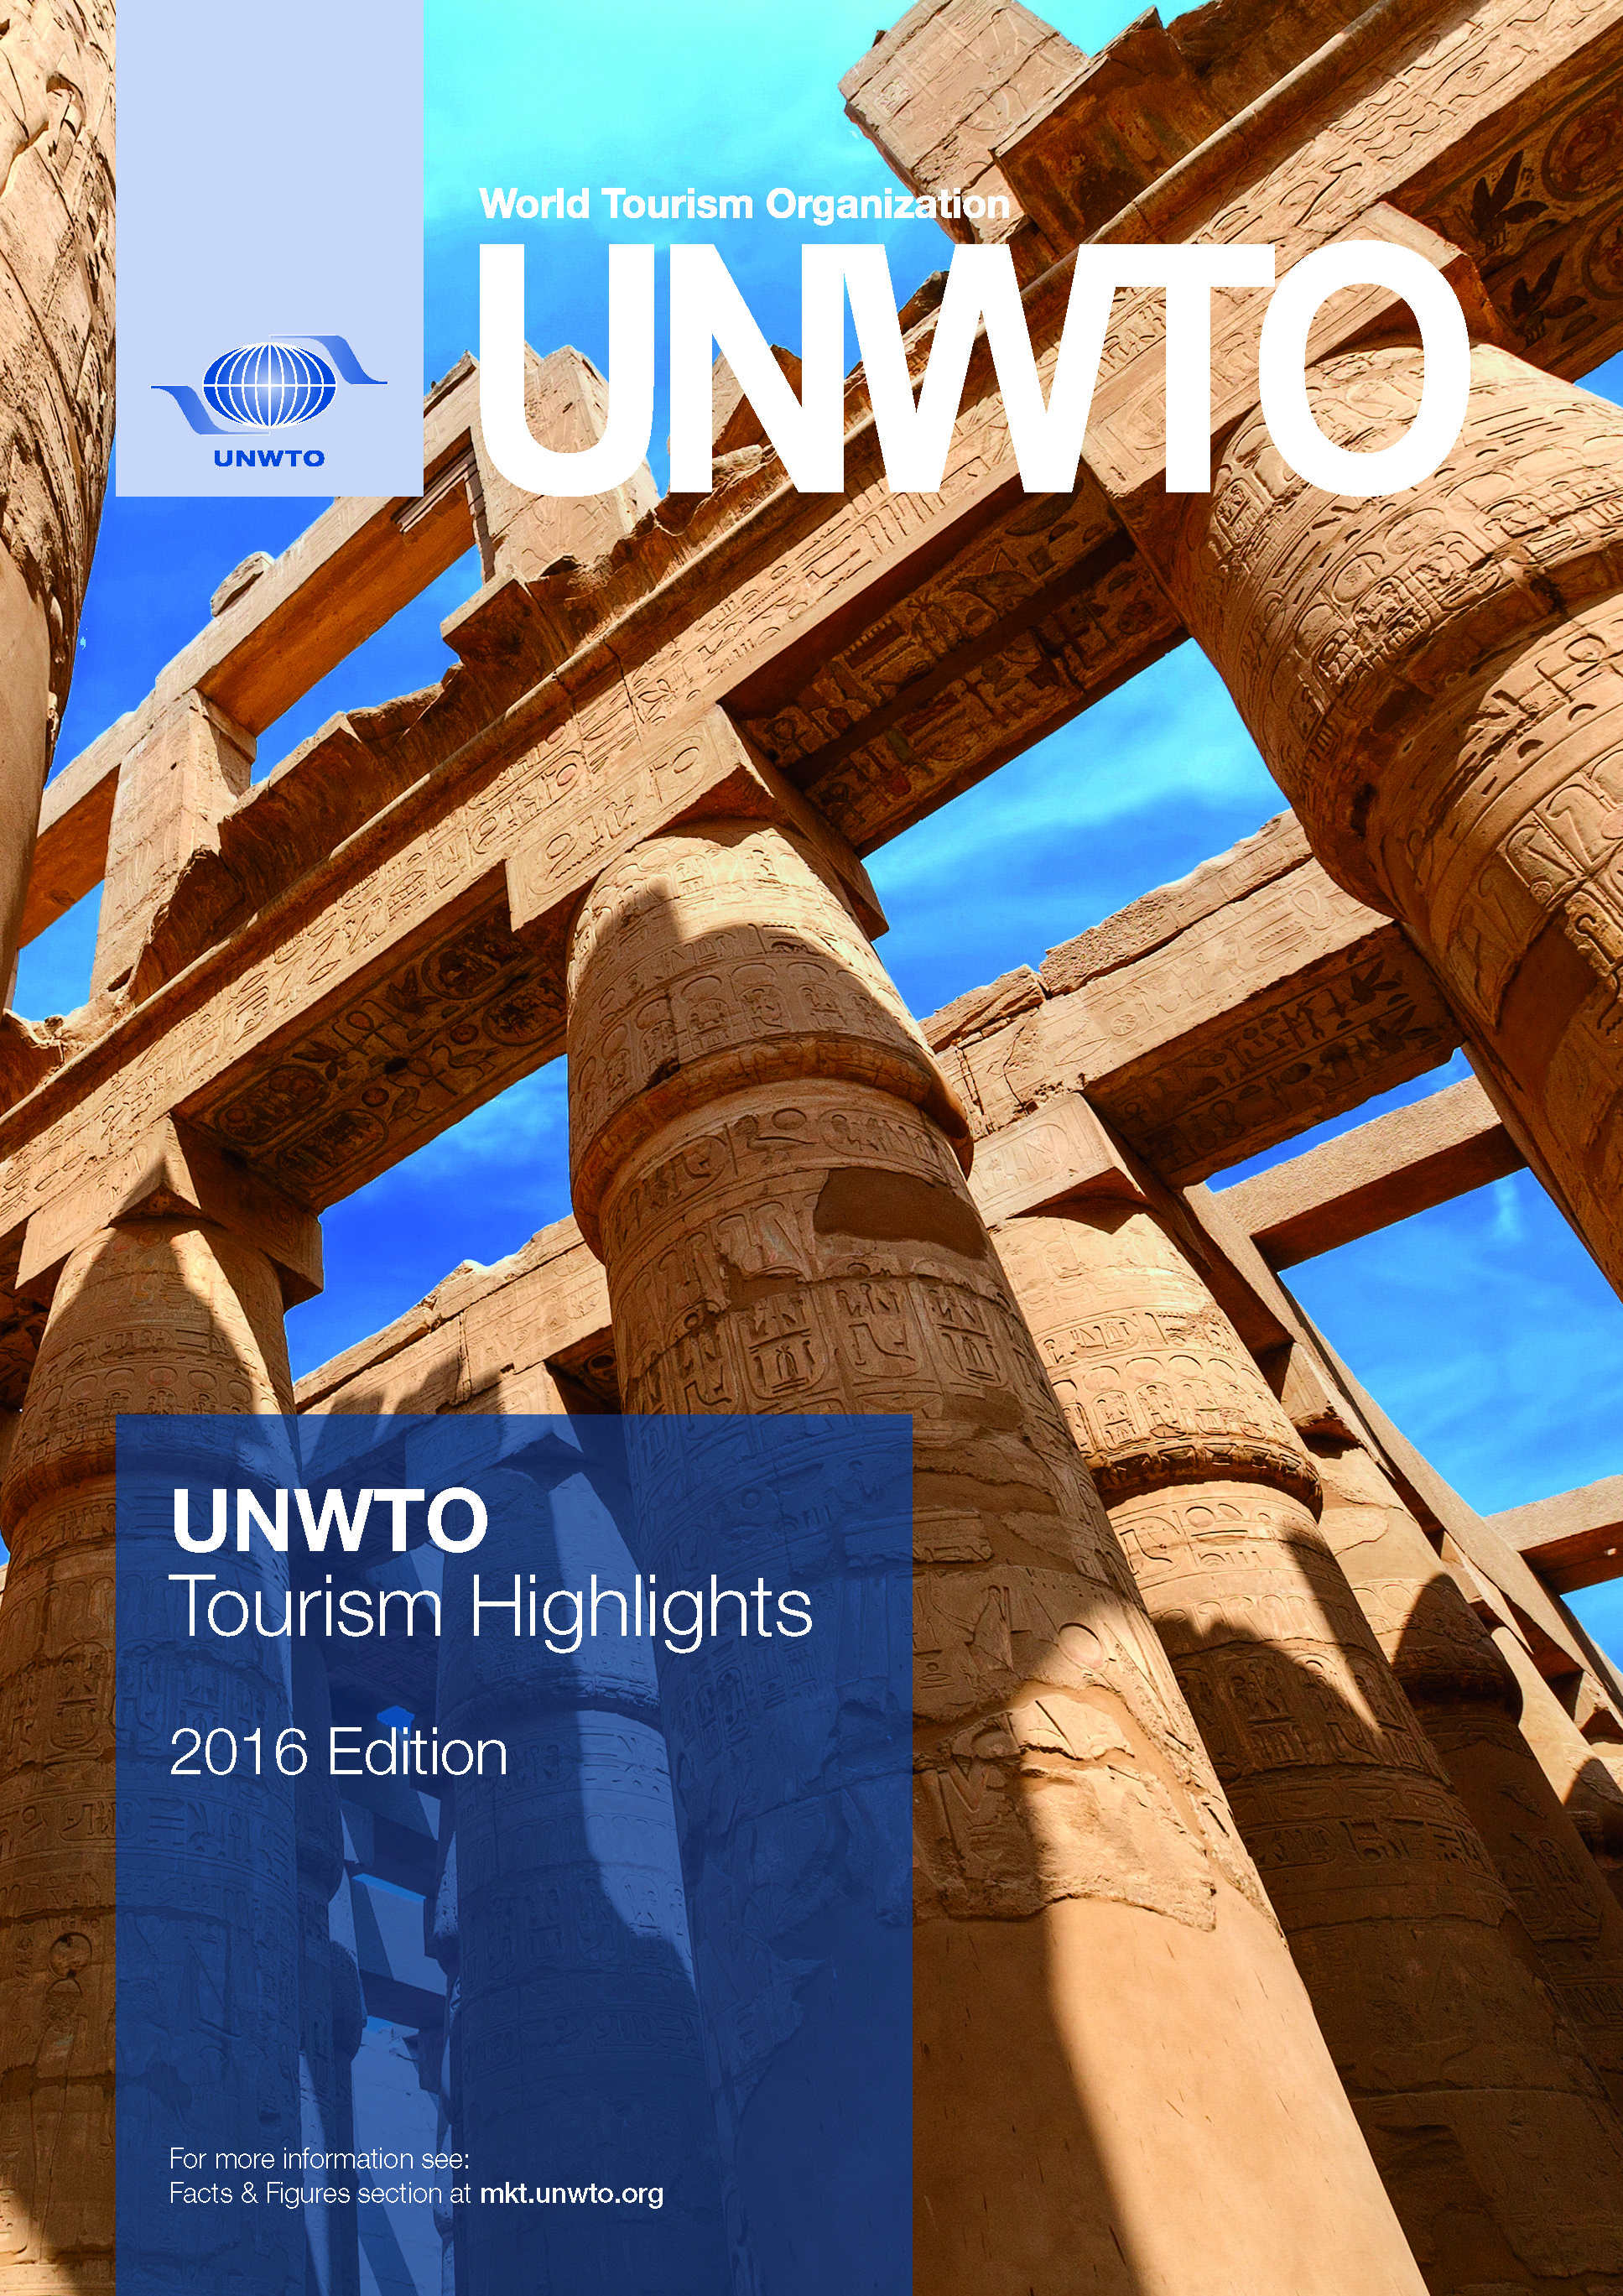 UNWTO Tourism Highlights, 2016 Edition